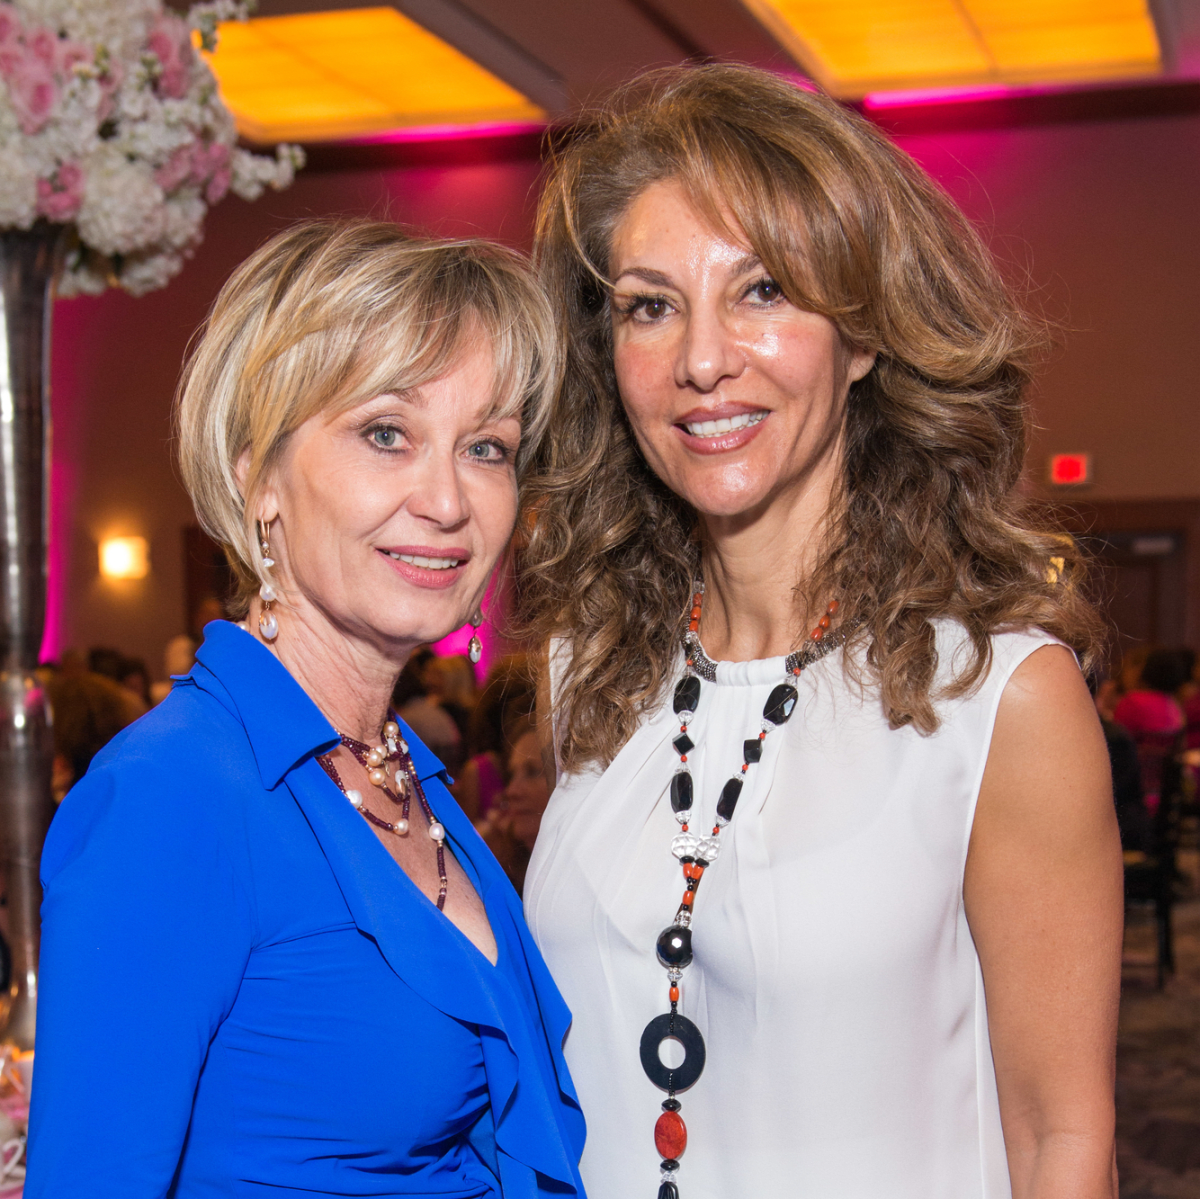 News, Shelby, Razzle Dazzle Memorial Hermann, Oct. 2015 Cathy Borlenghi and Neda Ladjevarian